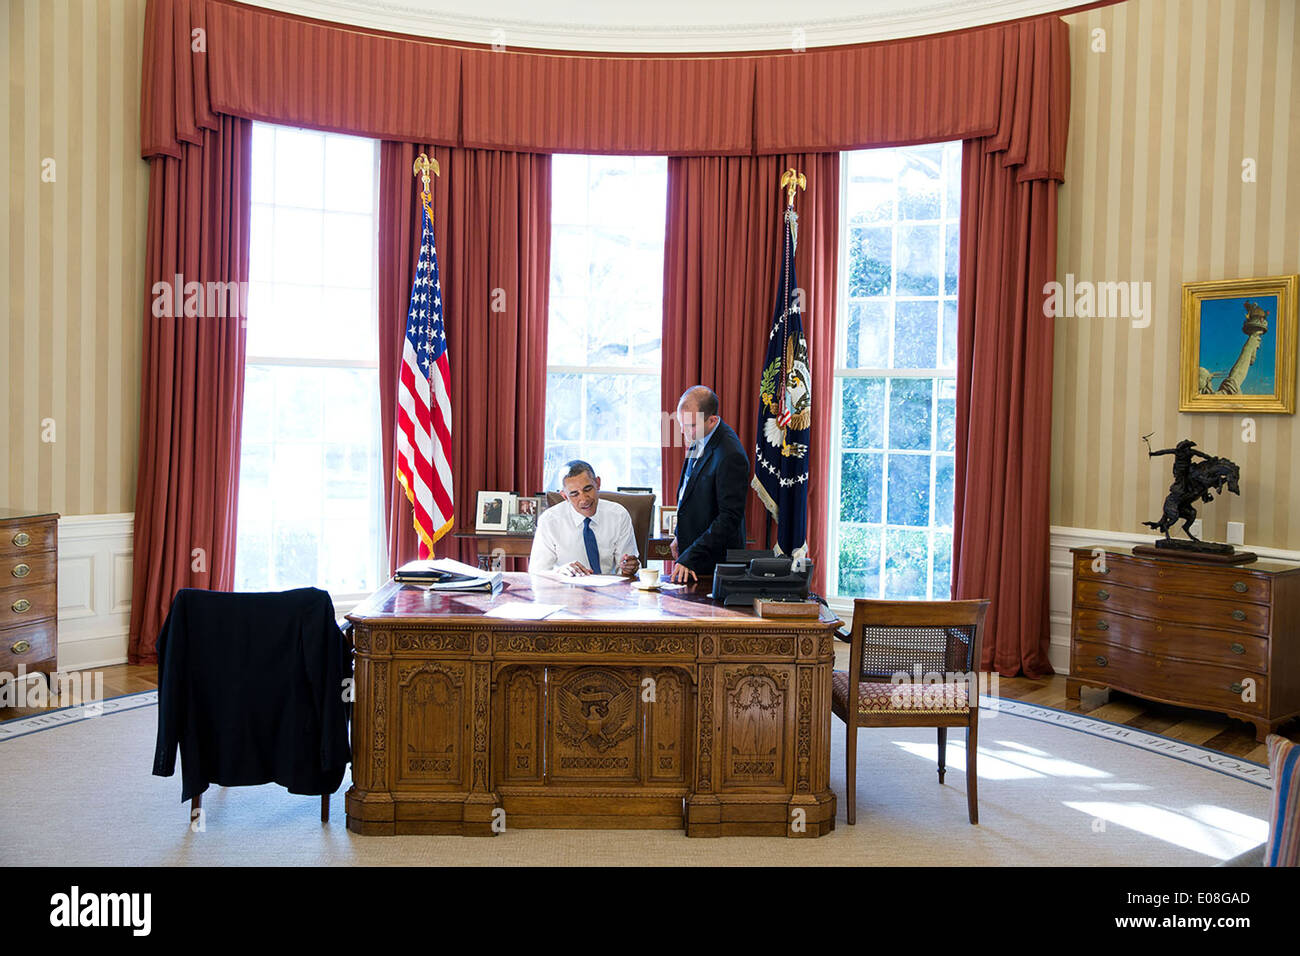 us president office. US President Barack Obama Works In The Oval Office With Ben Rhodes, Deputy National Security Advisor For Strategic Communications, On Remarks Us